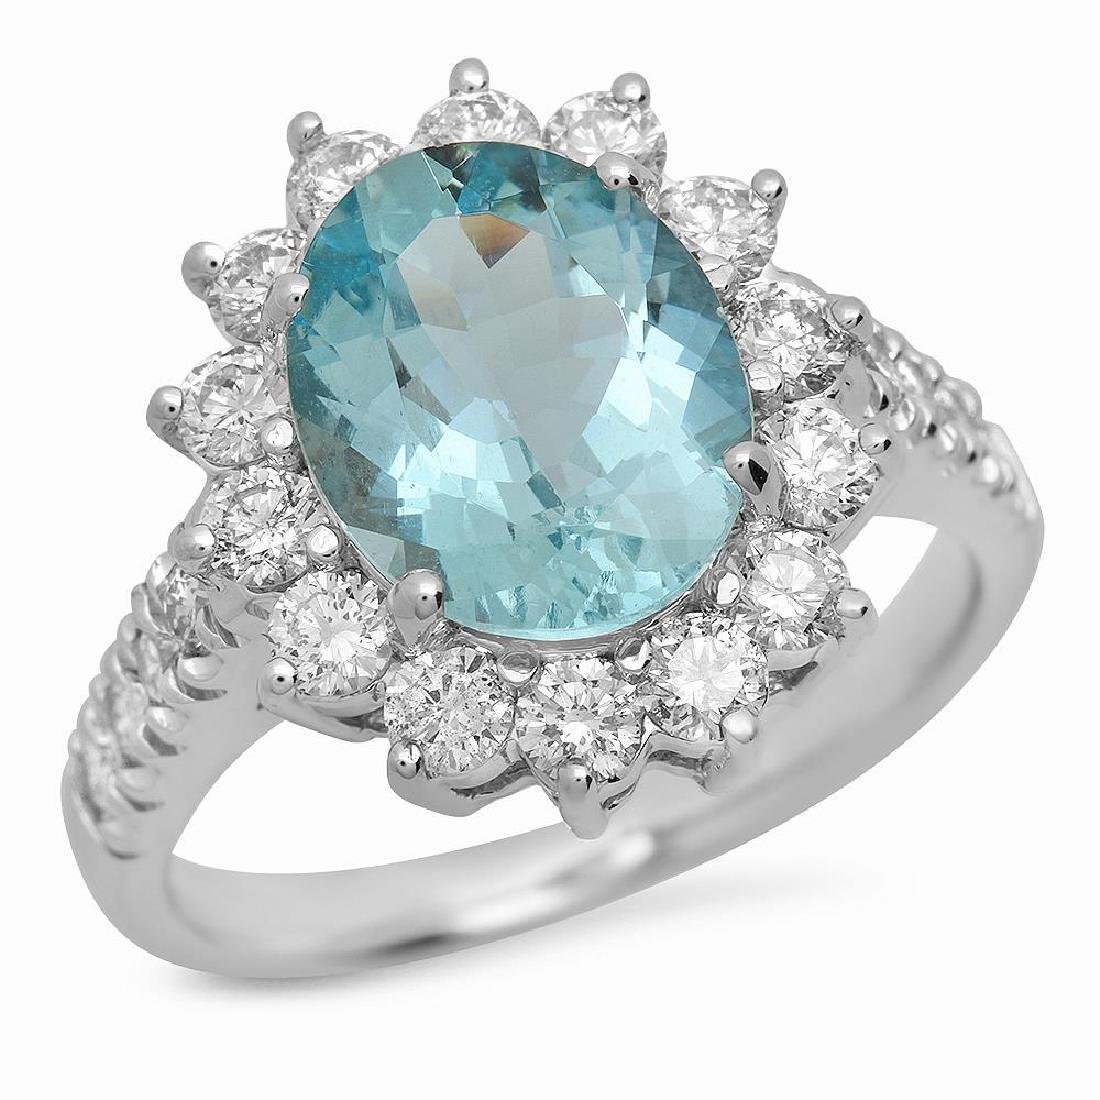 14K Gold 2.66ct Aquamarine 1.18ct Diamond Ring